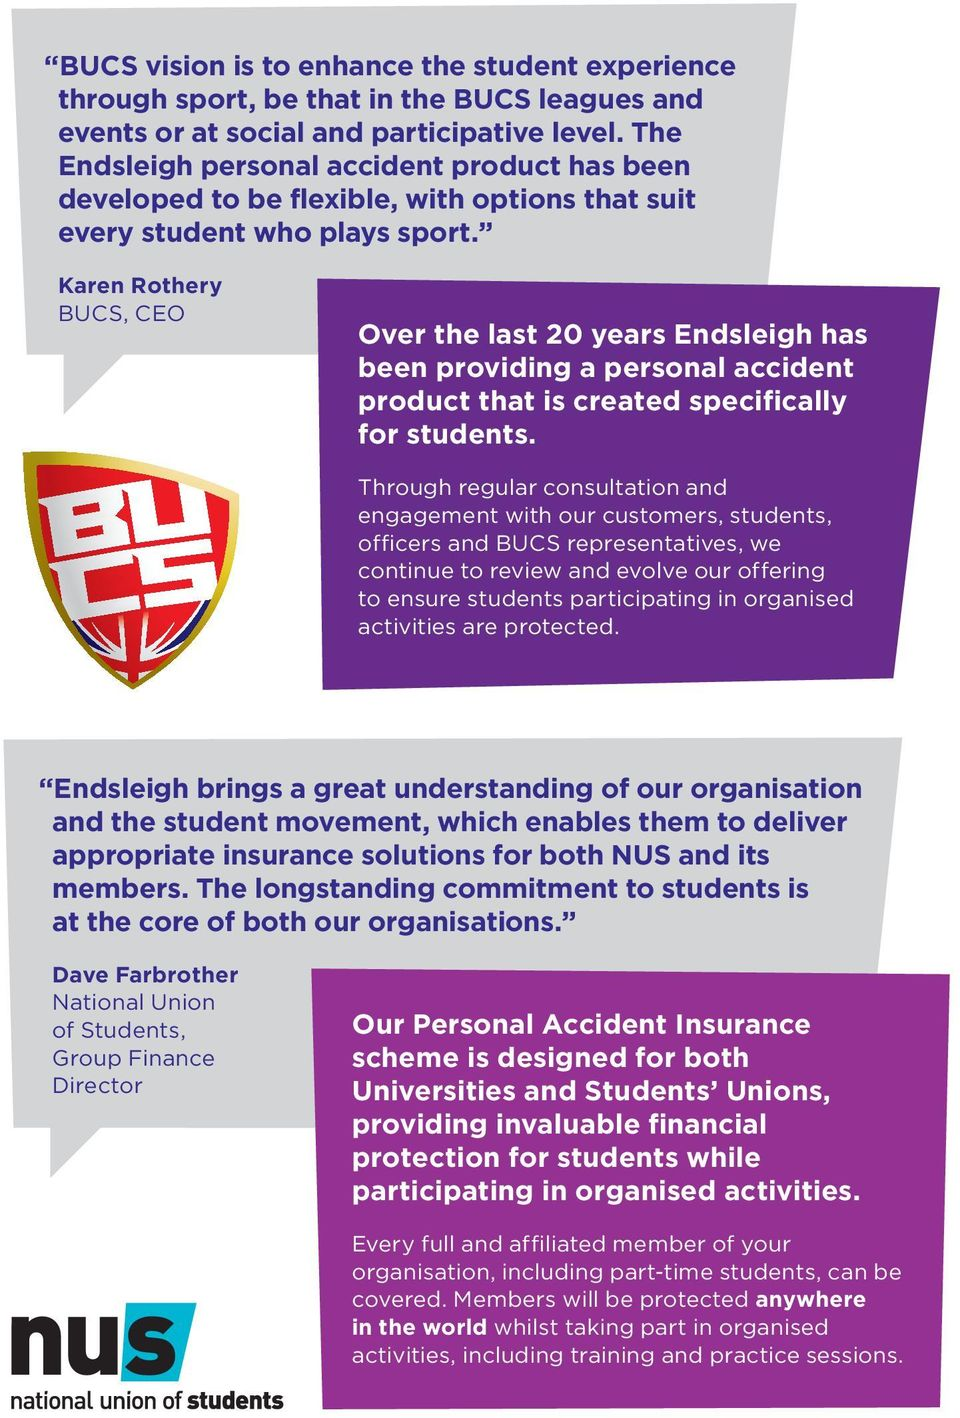 Karen Rothery BUCS, CEO Over the last 20 years Endsleigh has been providing a personal accident product that is created specifically for students.